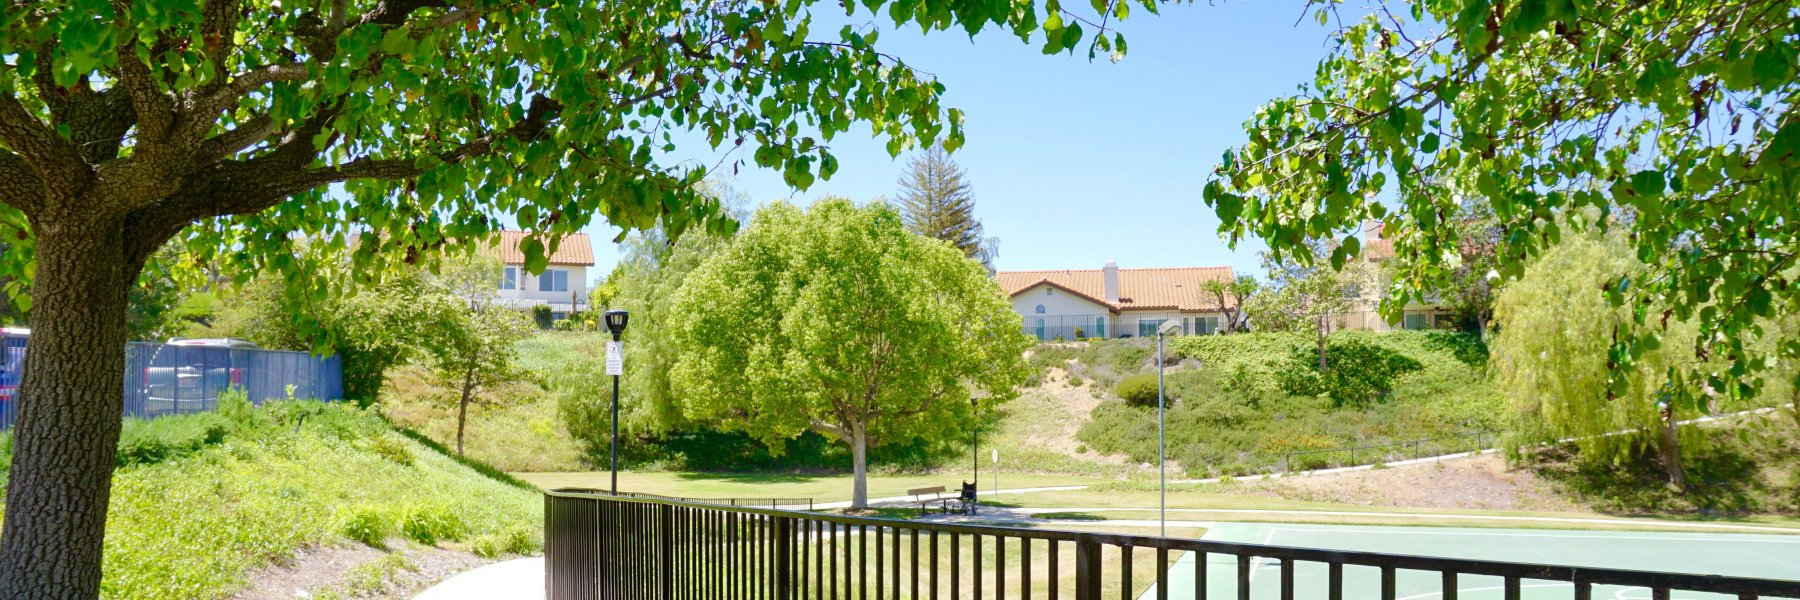 Oakridge Estates is a community of homes in Simi Valley California